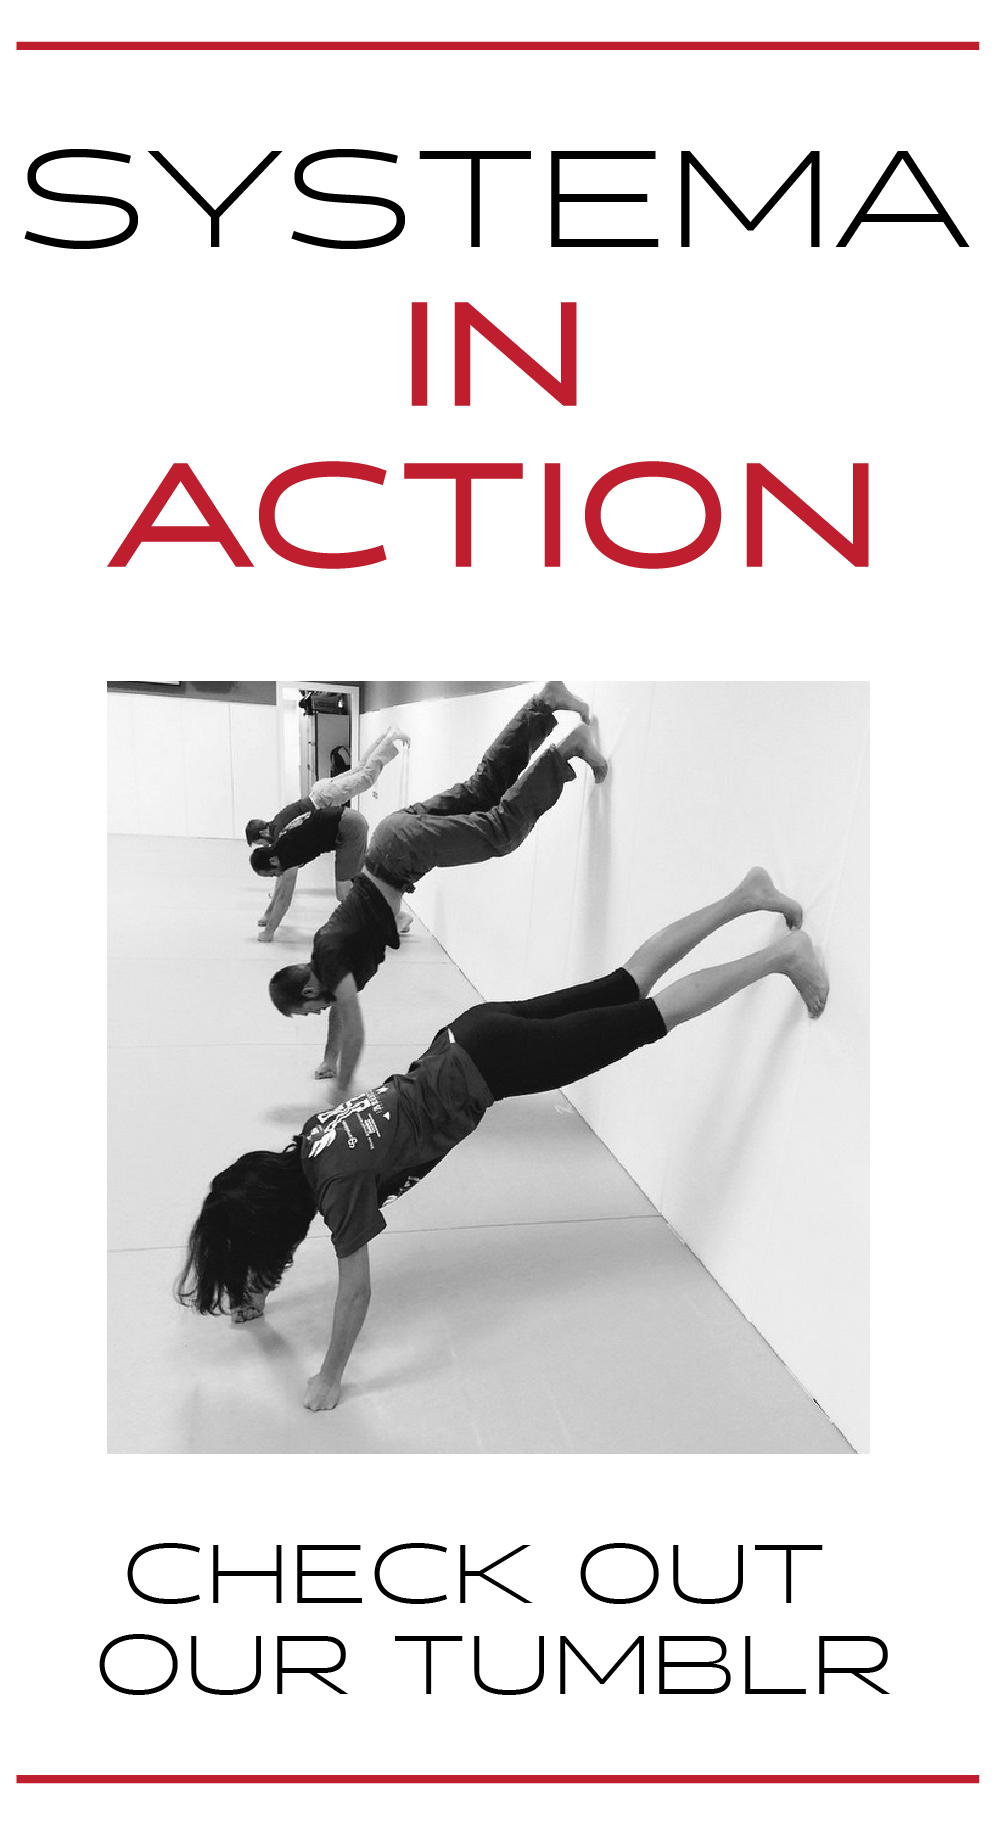 Systema-In-Action-01.png